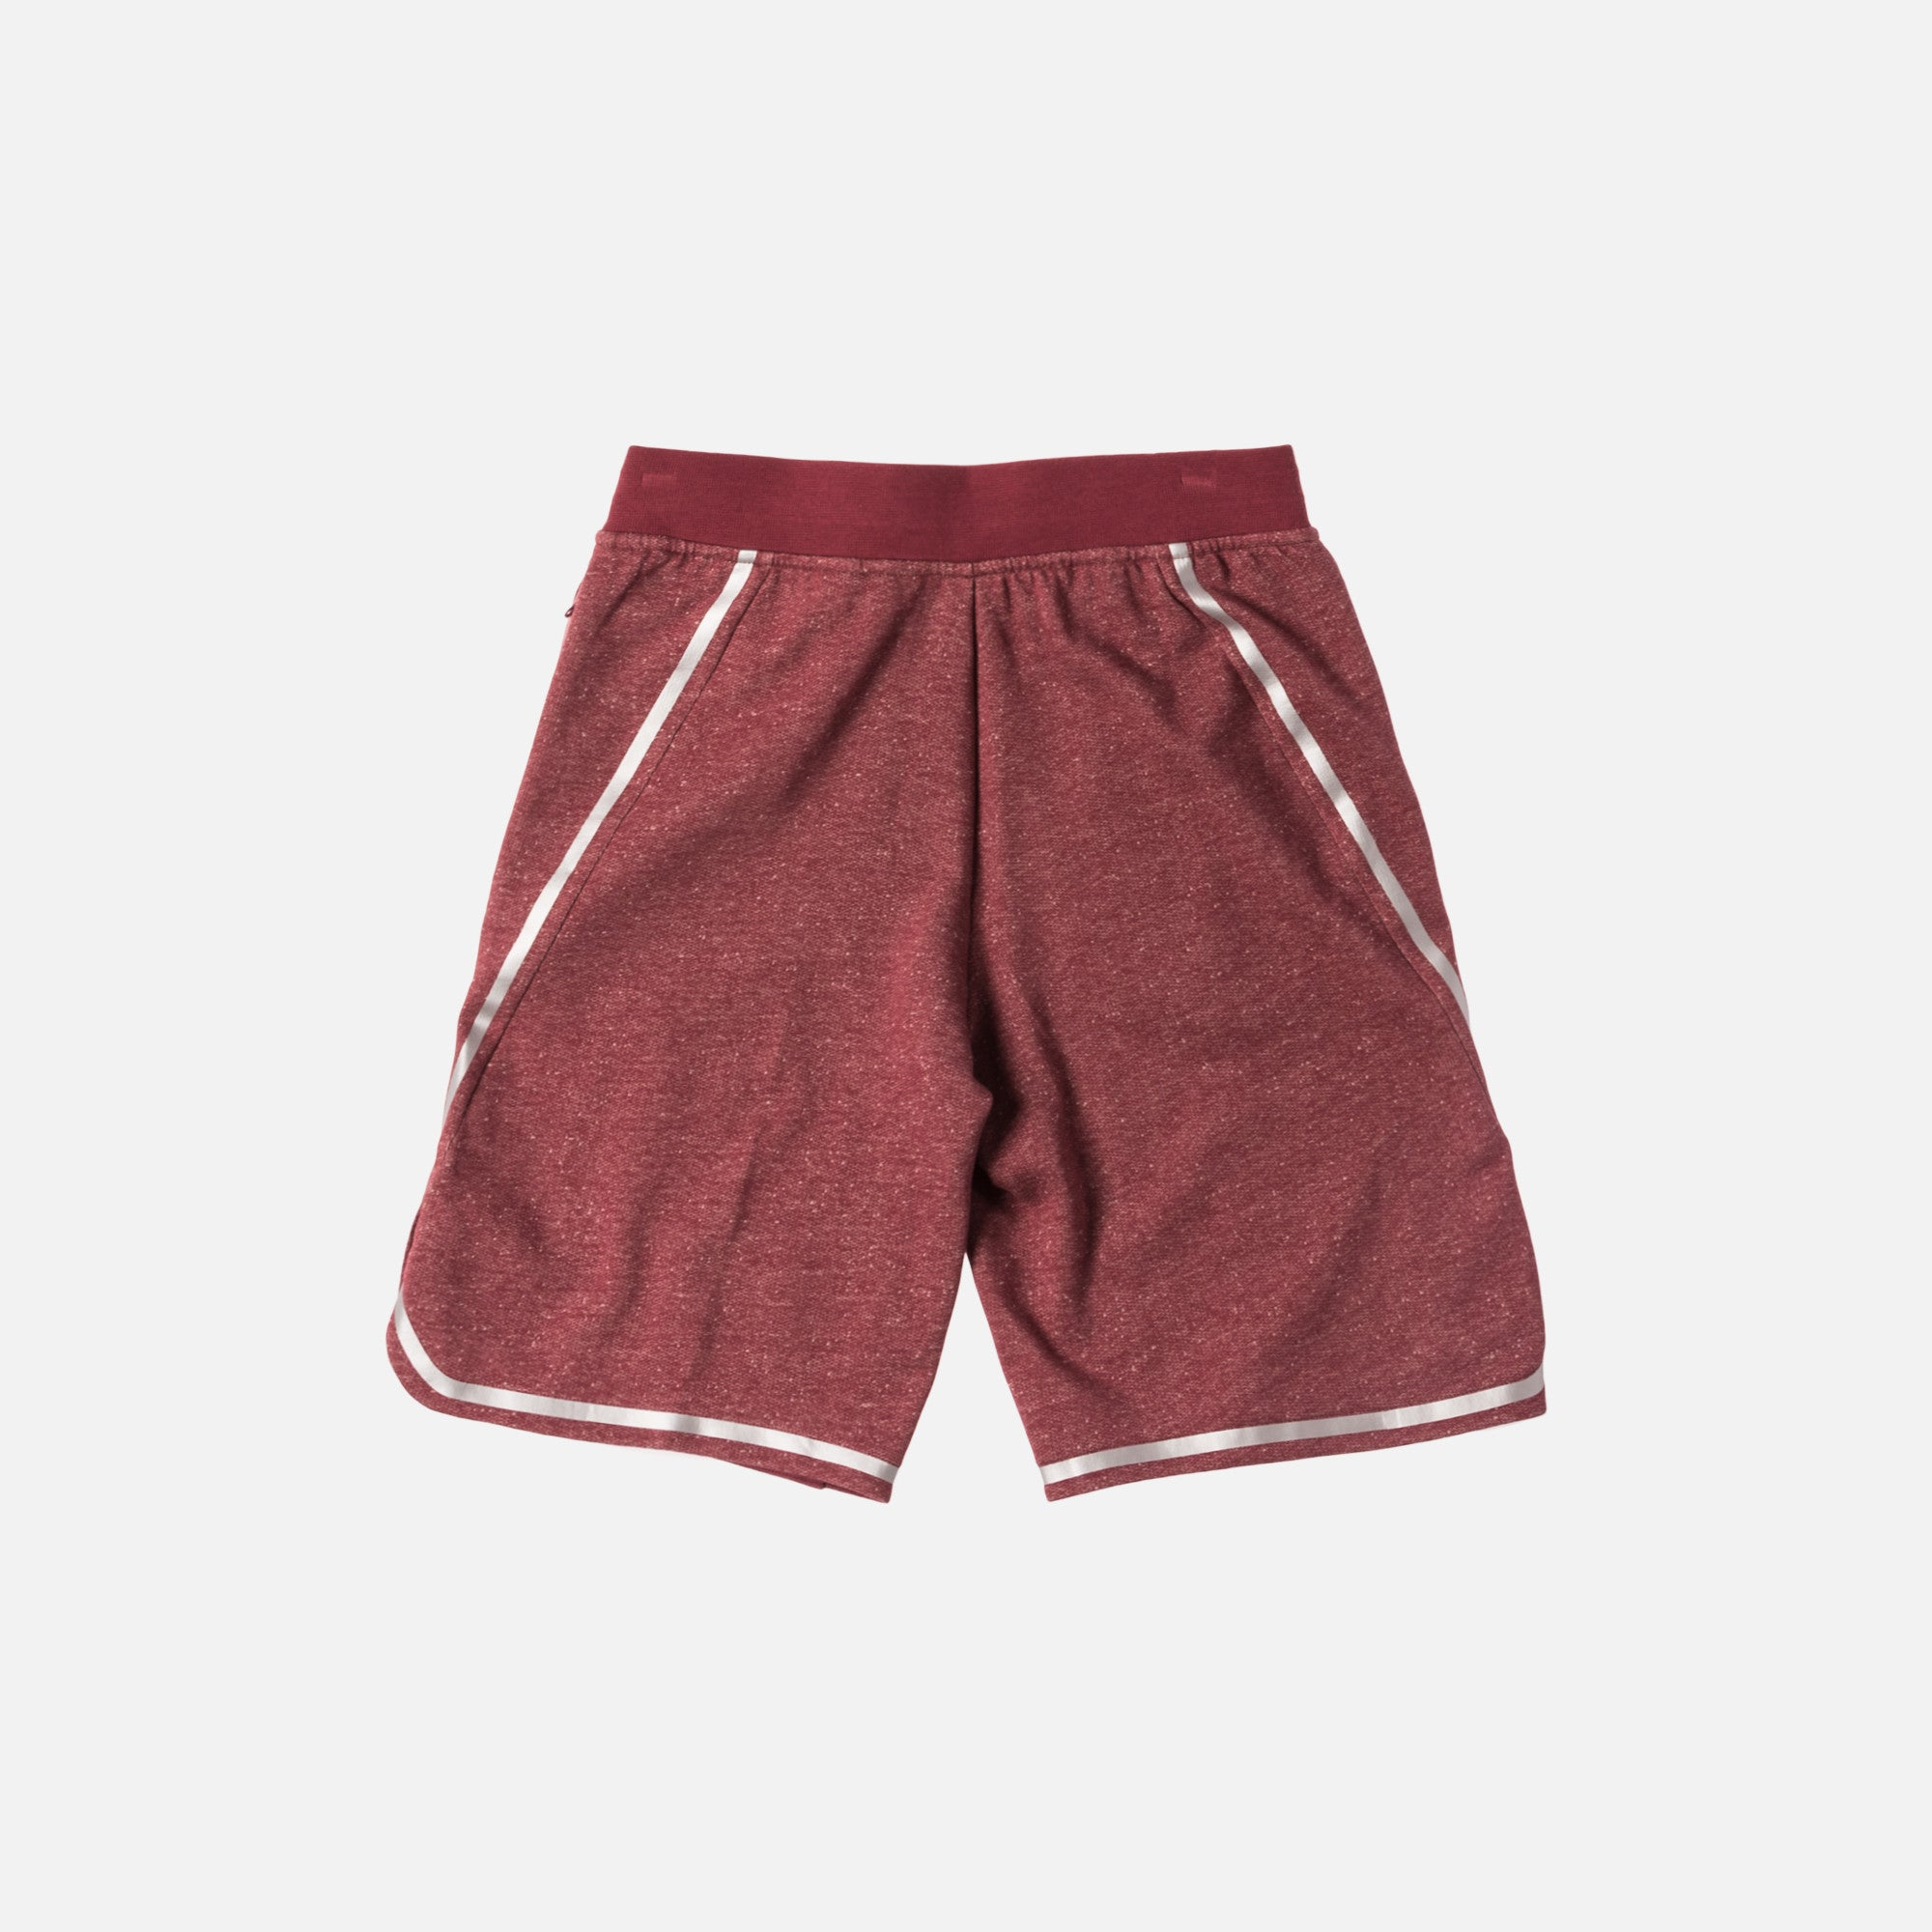 Nikelab x Pigalle Basketball Short - Port